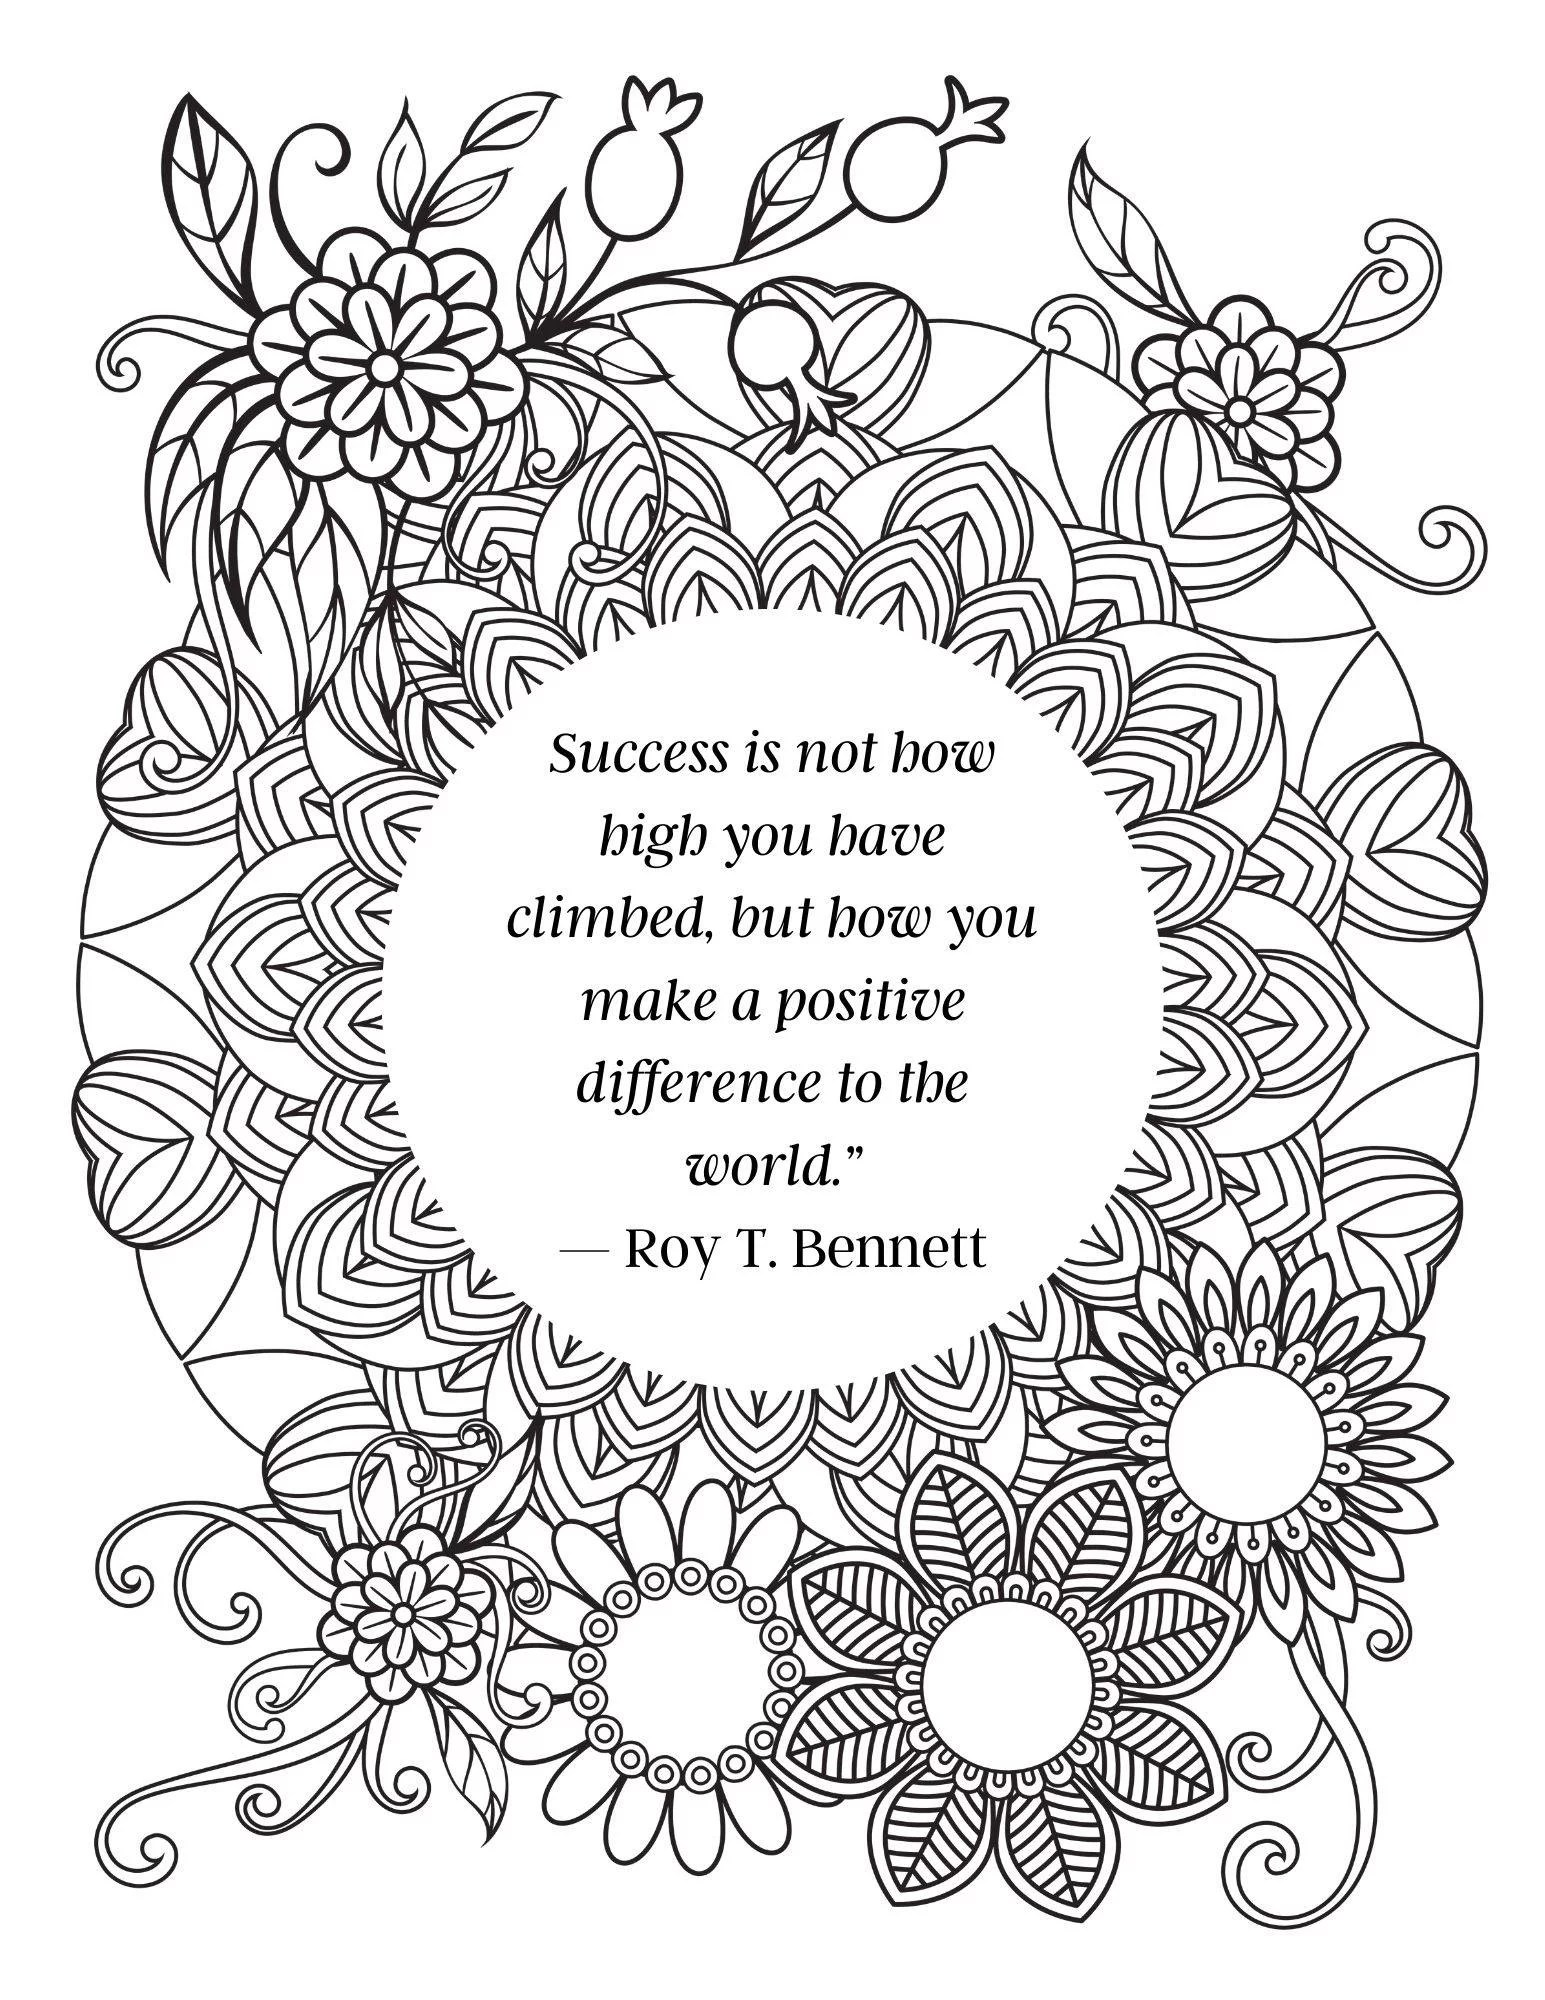 Positive Quotes Coloring Pages : positive, quotes, coloring, pages, Inspirational, Quote, Coloring, Pages, Adults